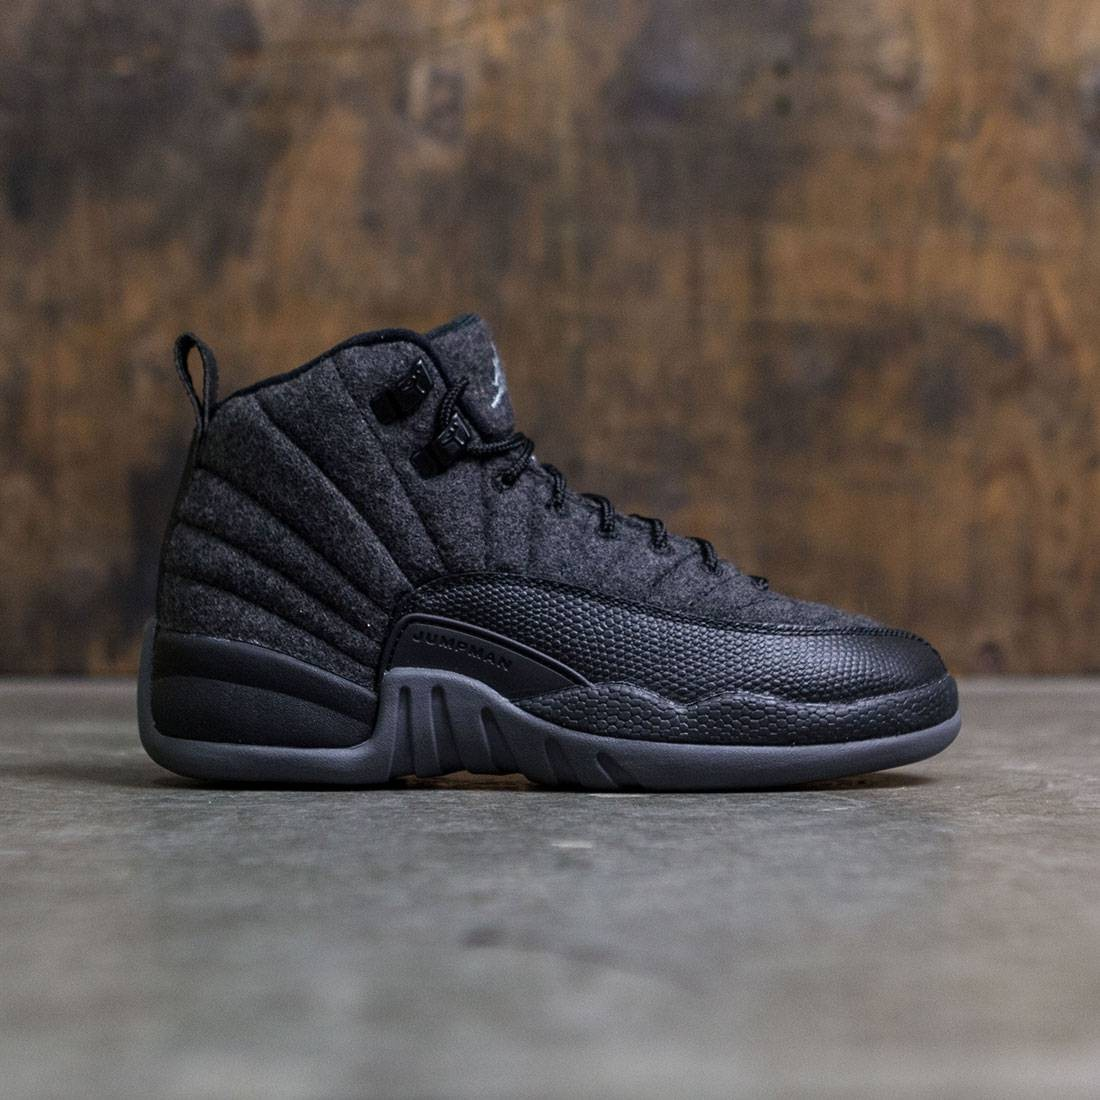 new product 8486b 8b709 Jordan Big Kids Air Jordan 12 Retro Premium (GS) (dark grey   metallic  silver-black)